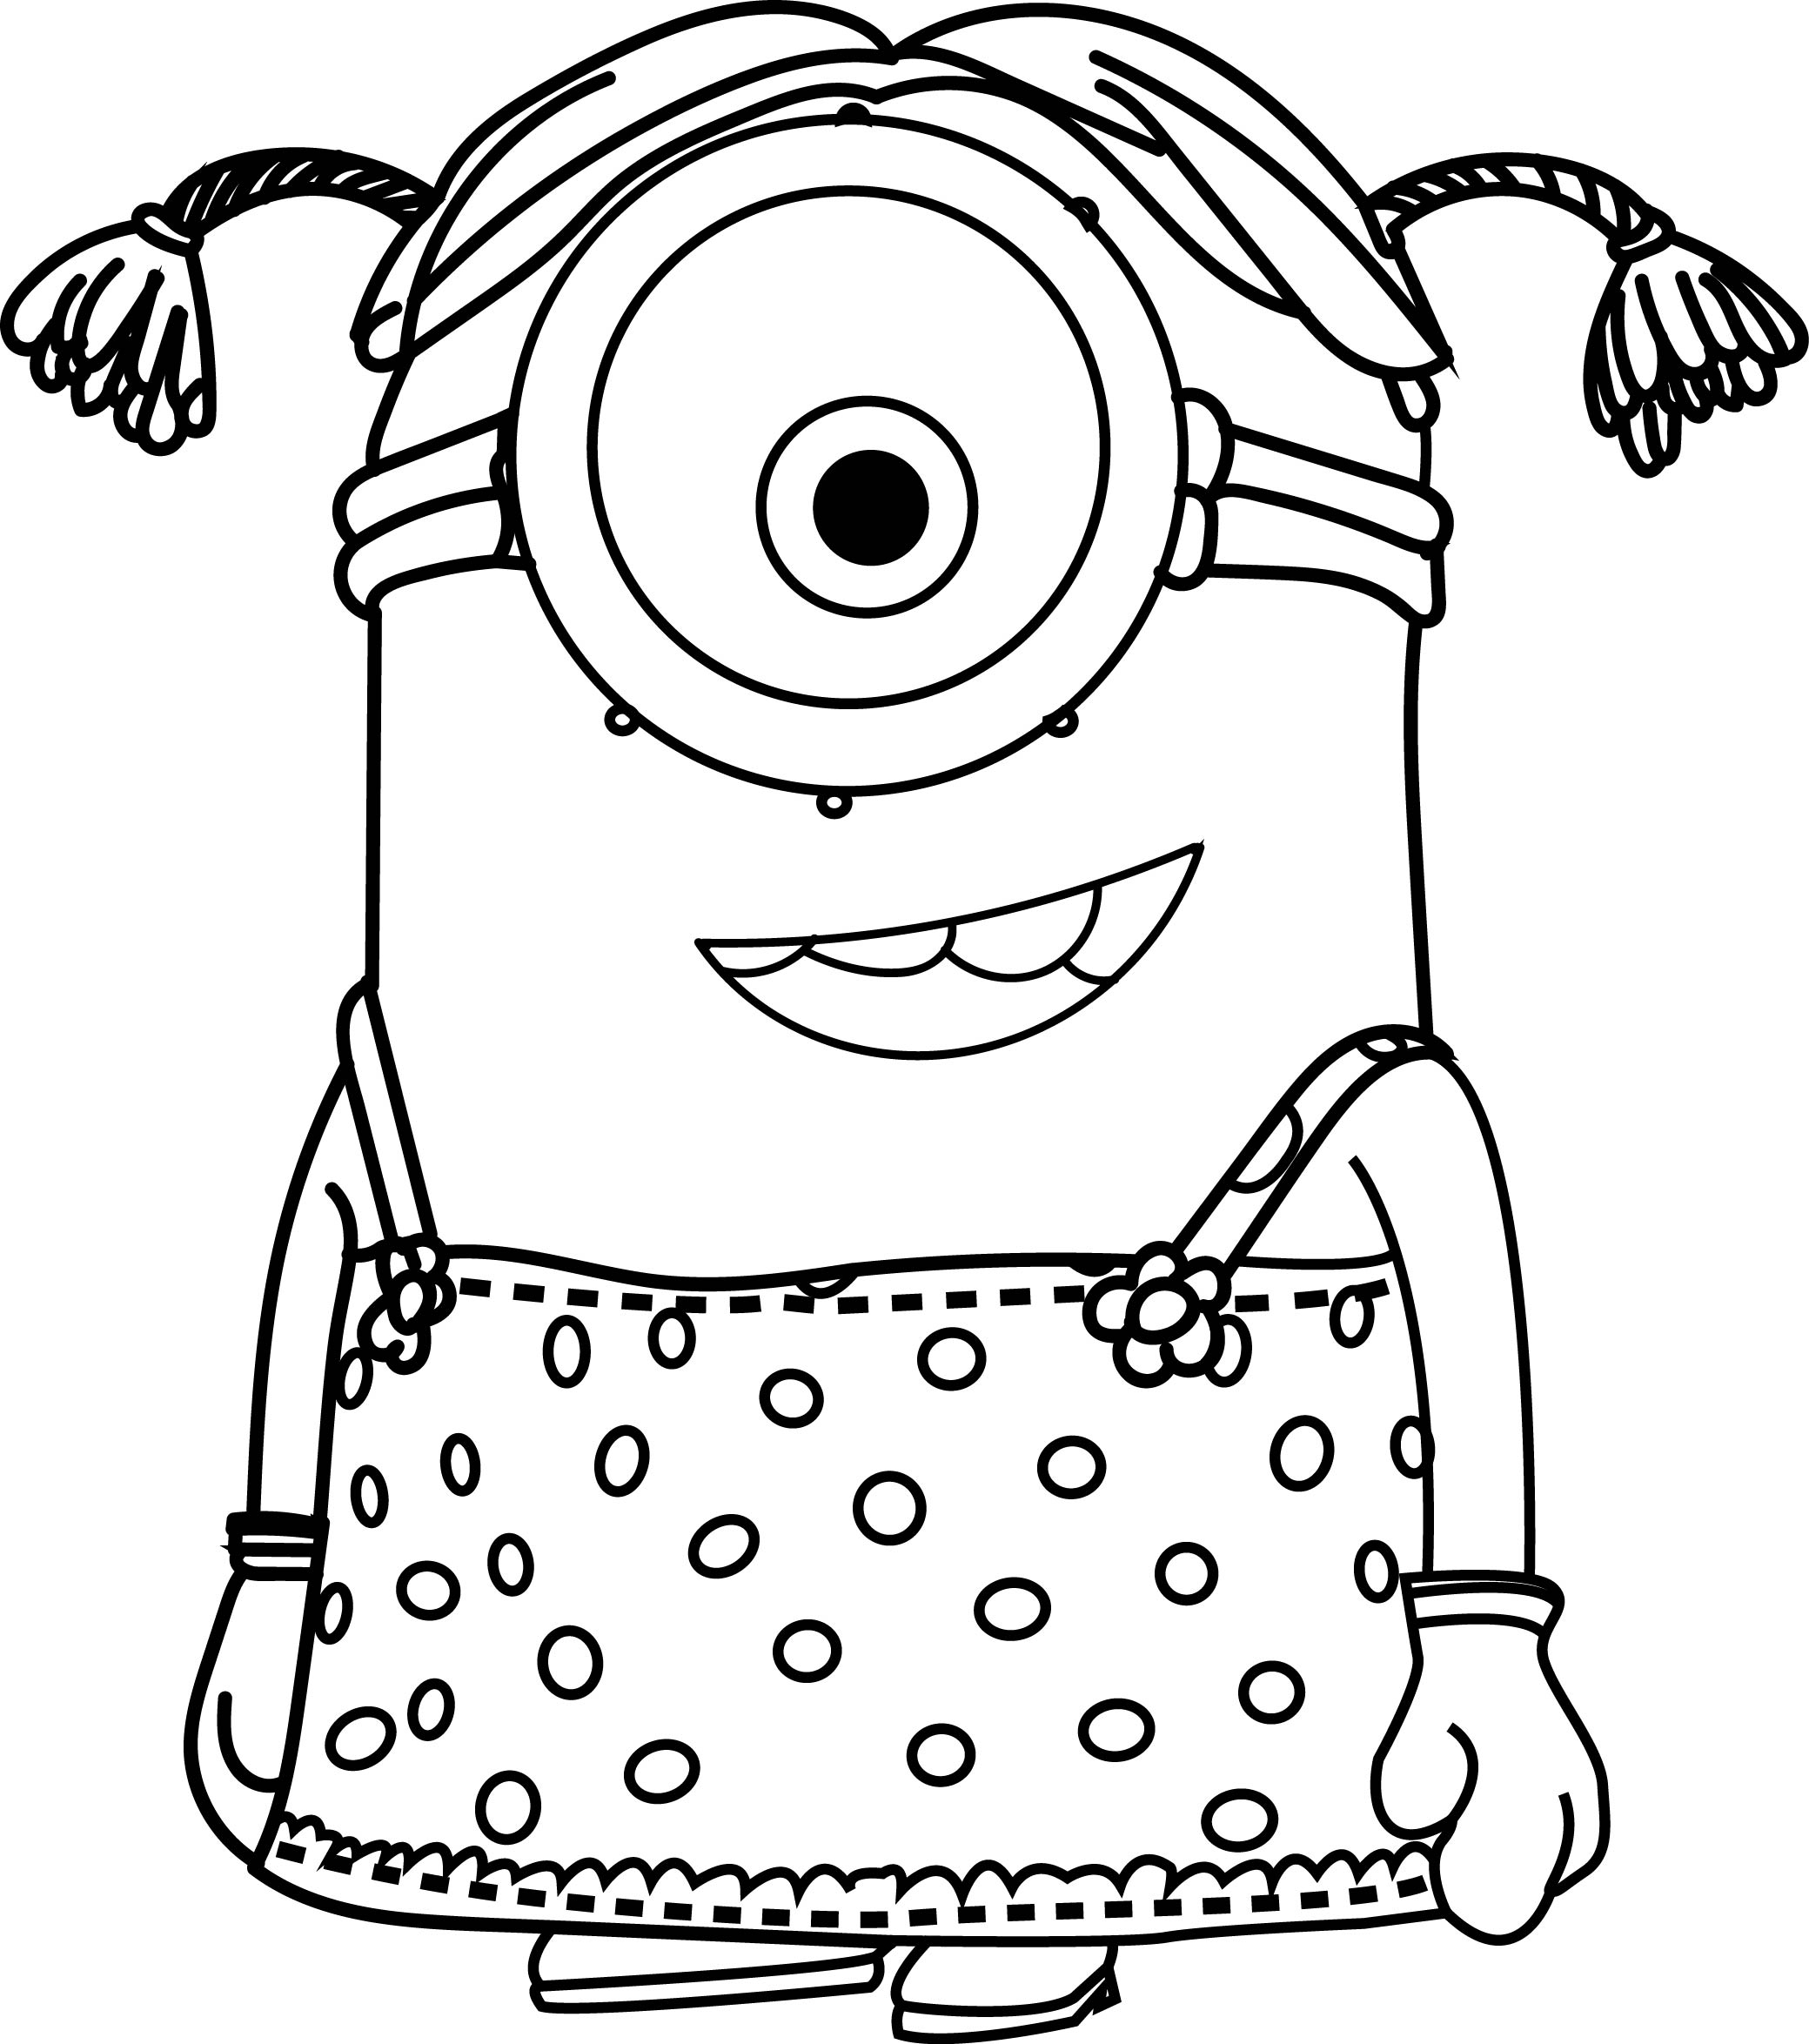 minions print minion coloring pages best coloring pages for kids minions print 1 4